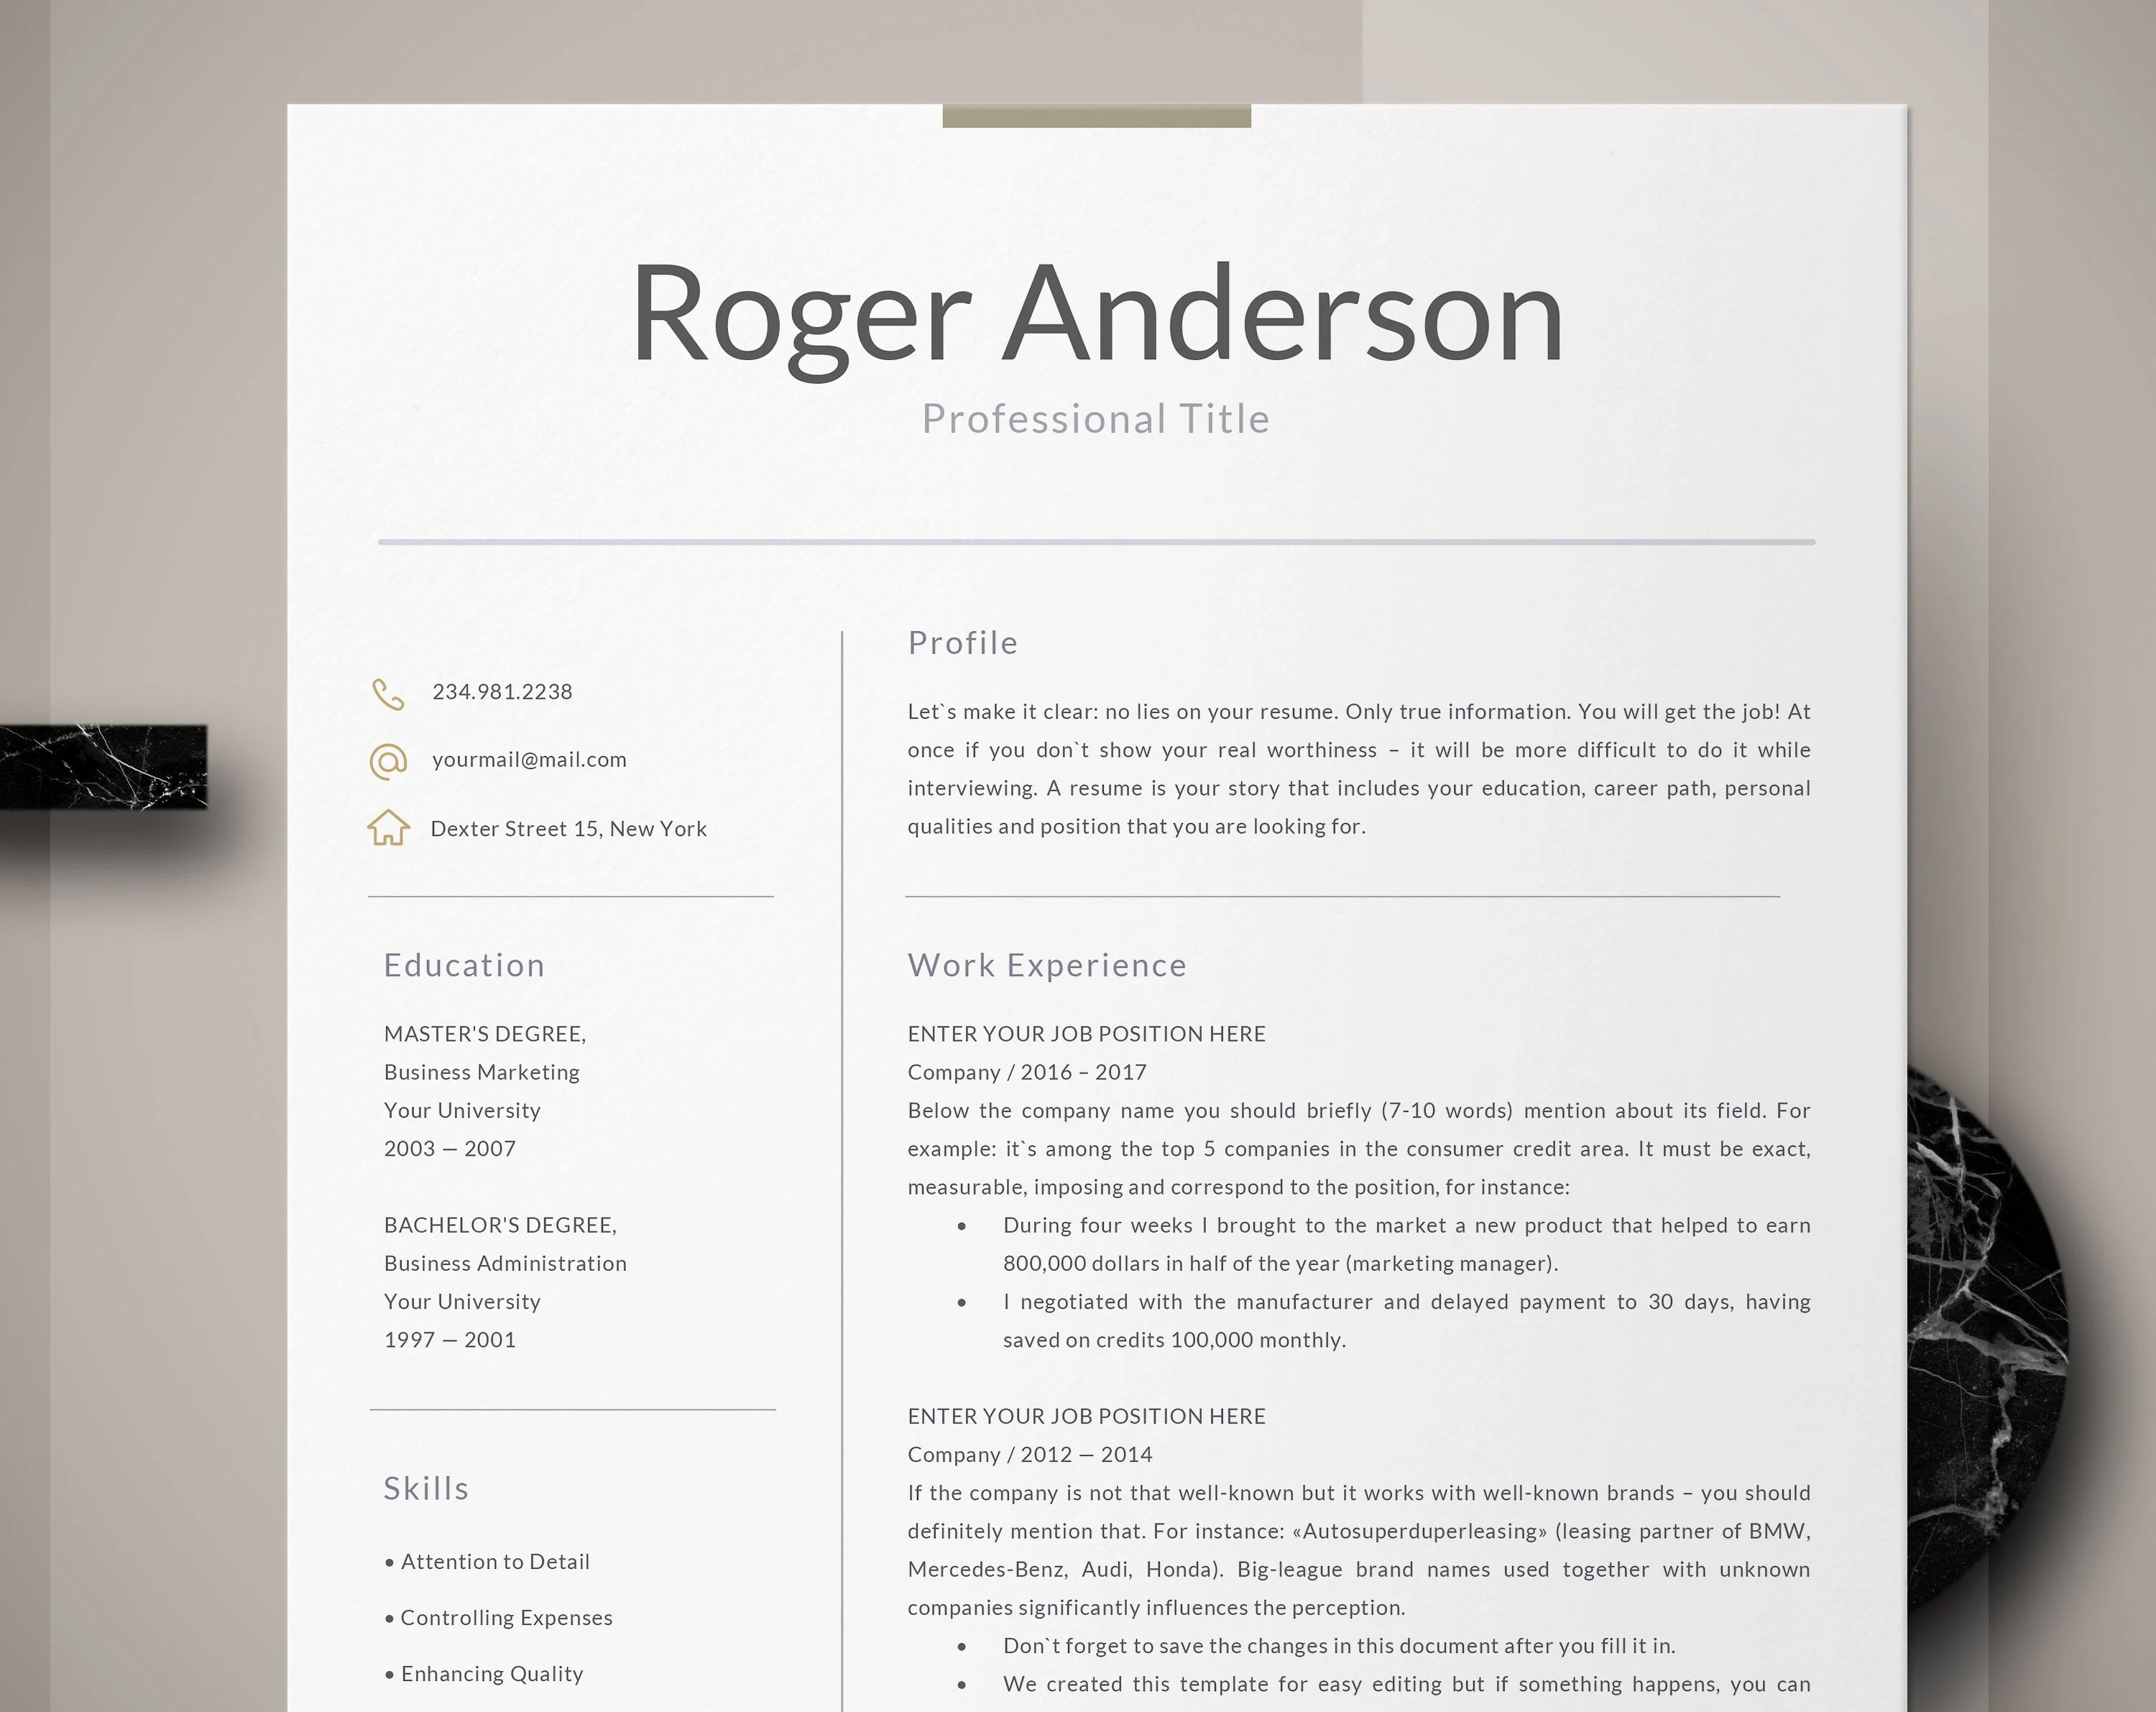 Business Resume Template Word Executive Resume Template Business Resume For Word Engineering Resume Finance Technical Hr Manager Professional Resumes Icons